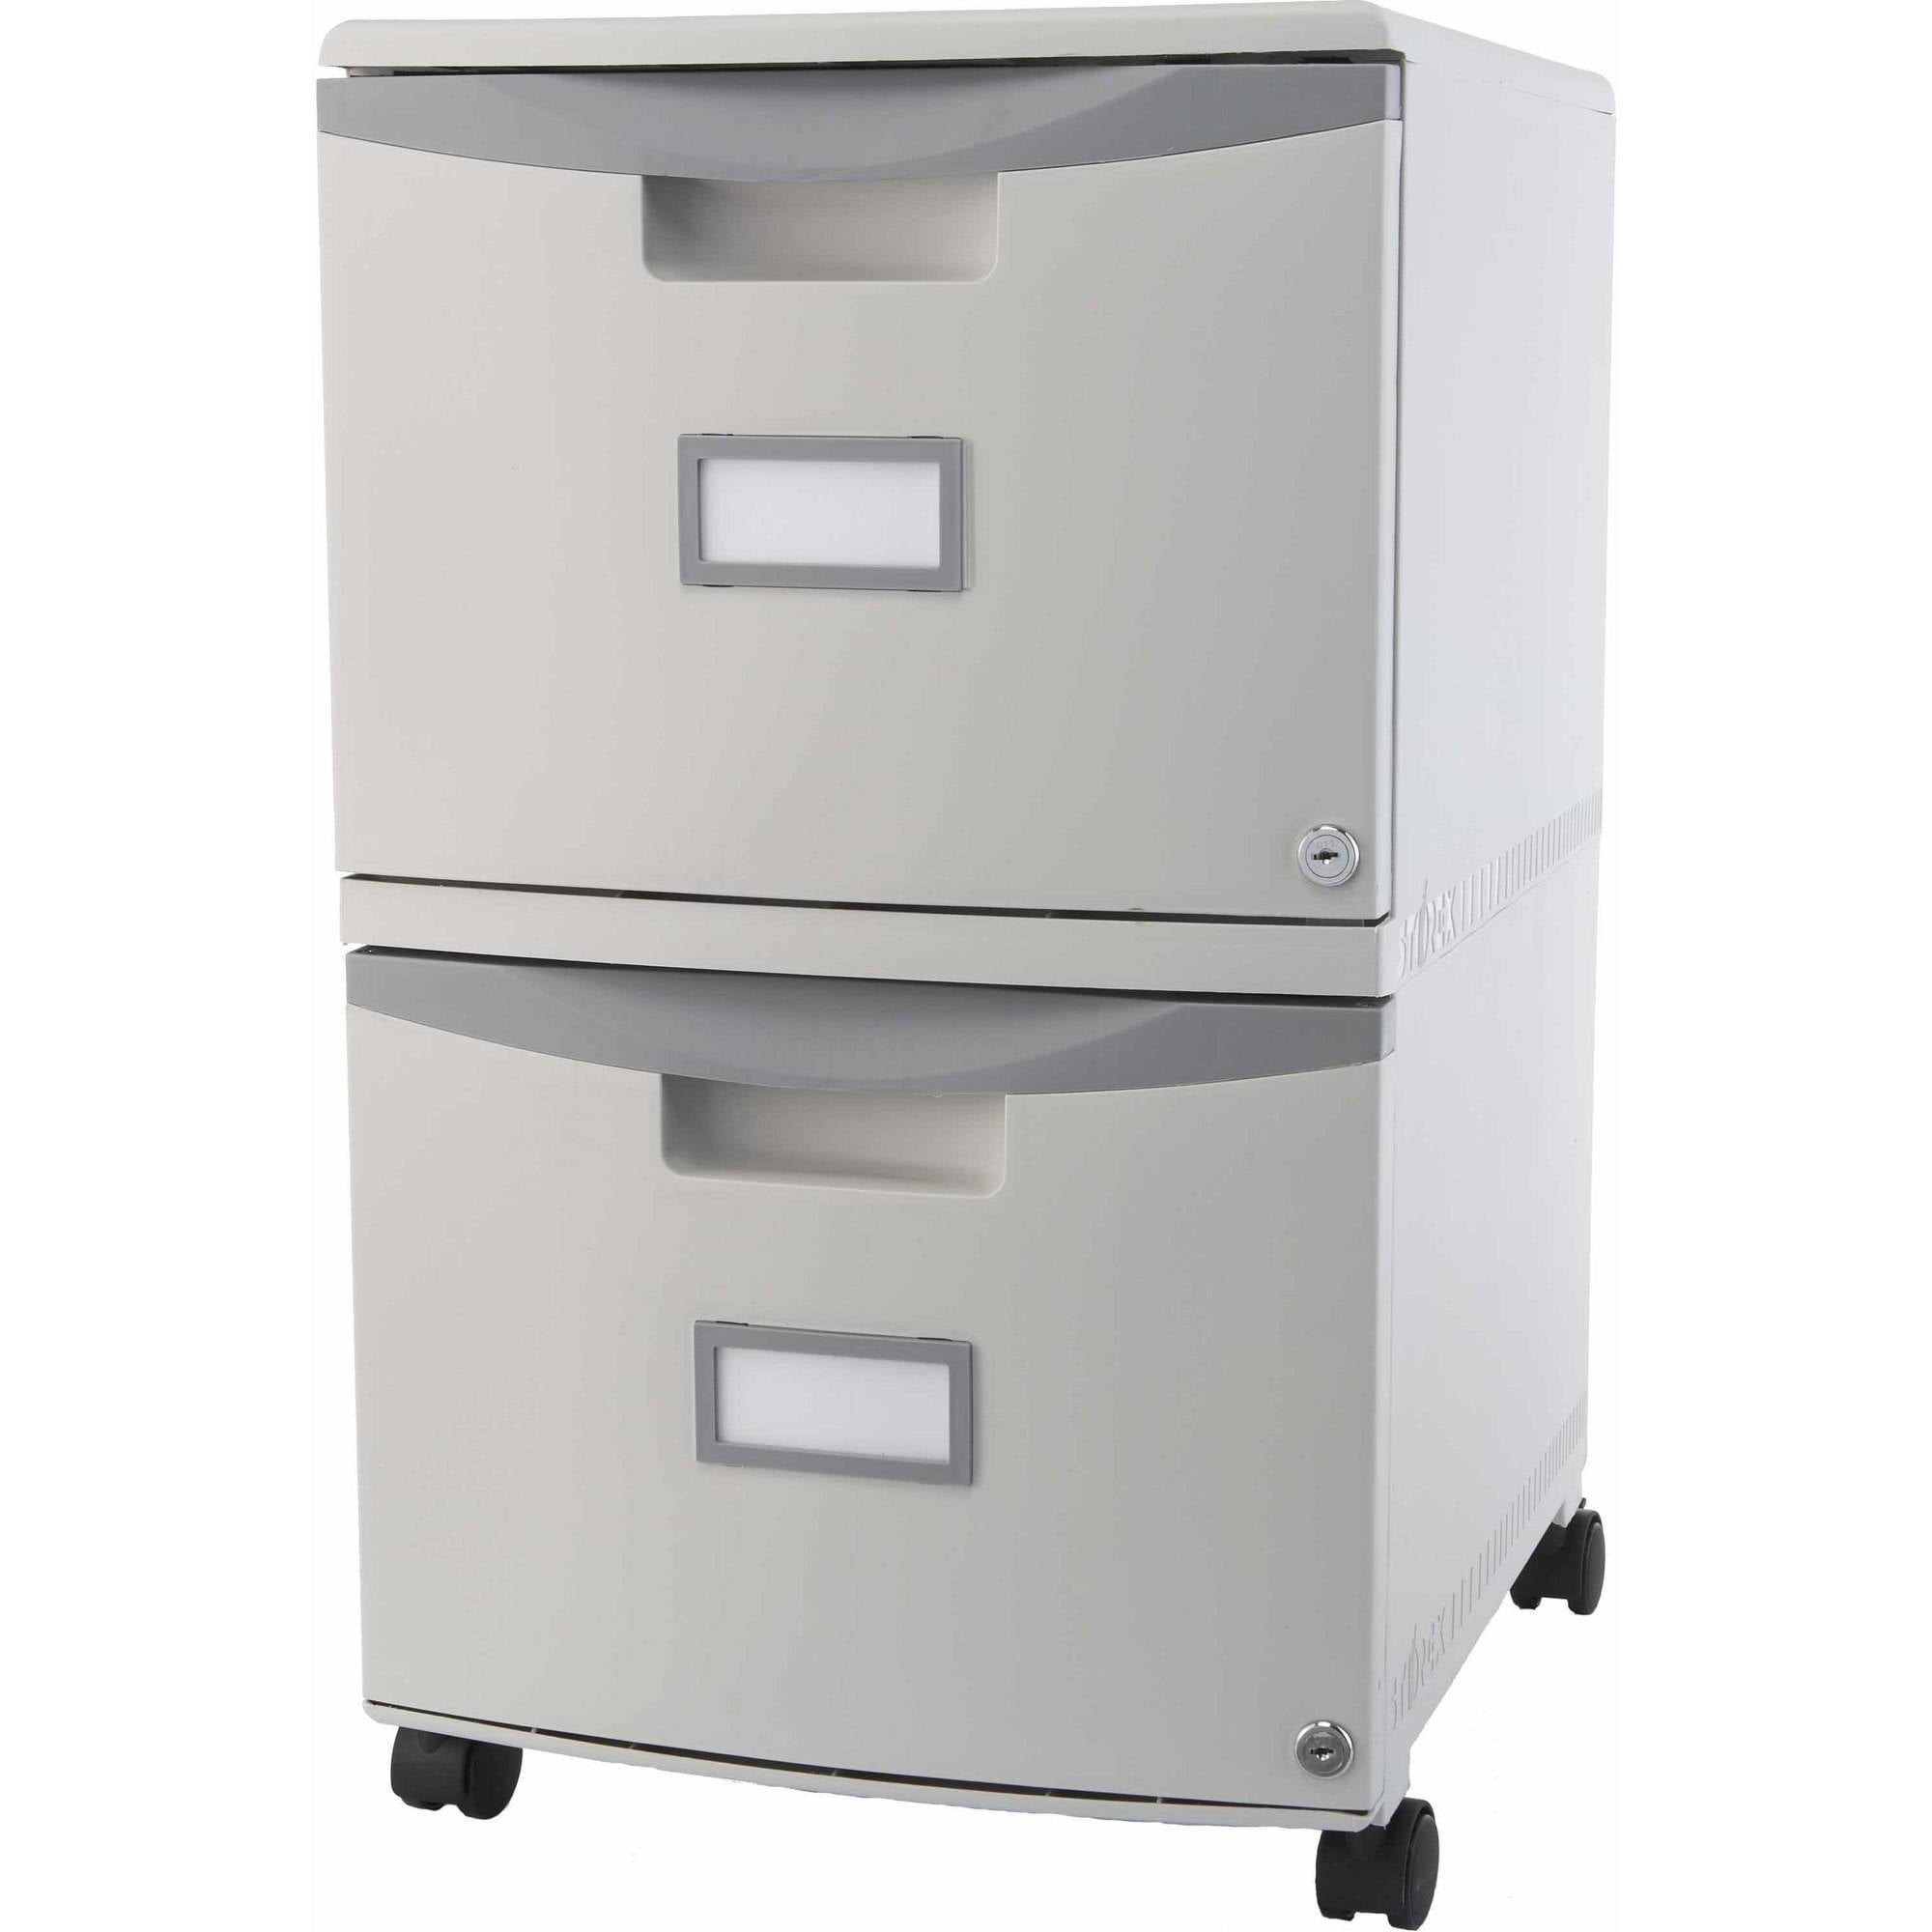 Merveilleux Storex 2 Drawer Mobile File Cabinet With Lock And Casters, Legal/Letter    Walmart.com